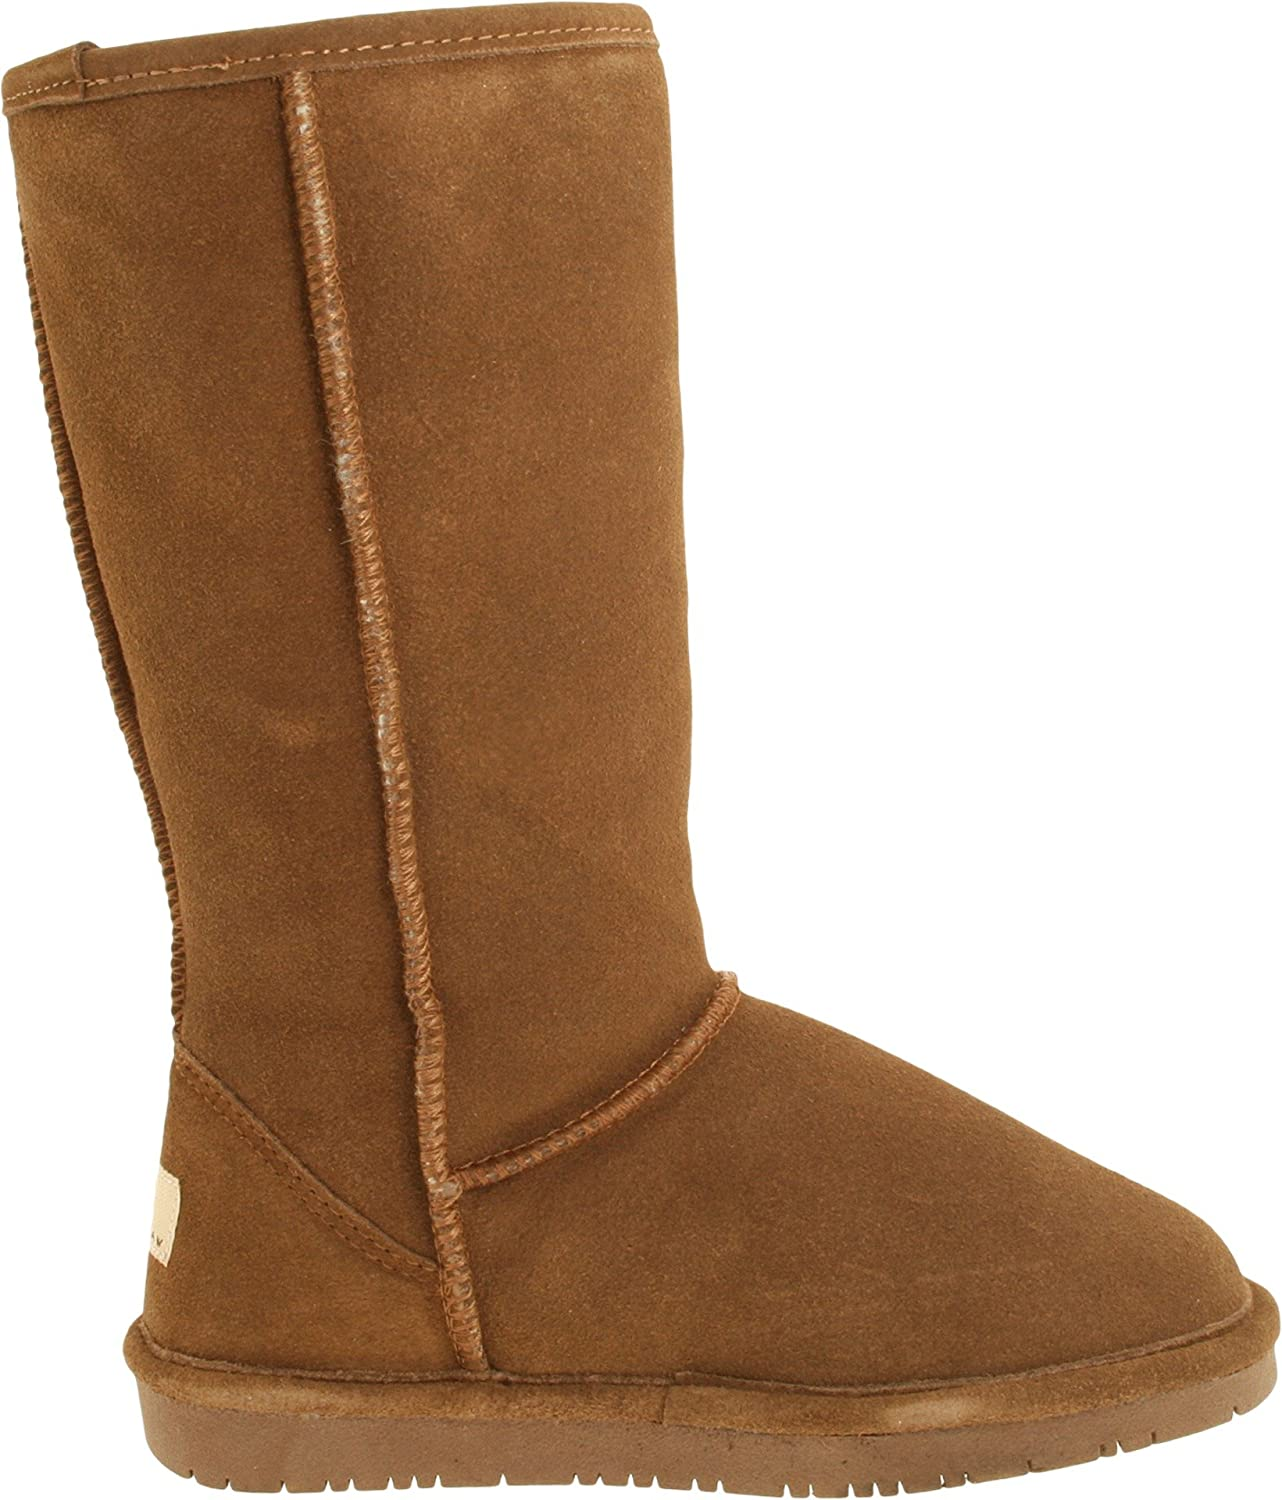 BEARPAW Women's Emma Tall Mid Calf Boot B077R5N2YL 36 M EU|Hickory